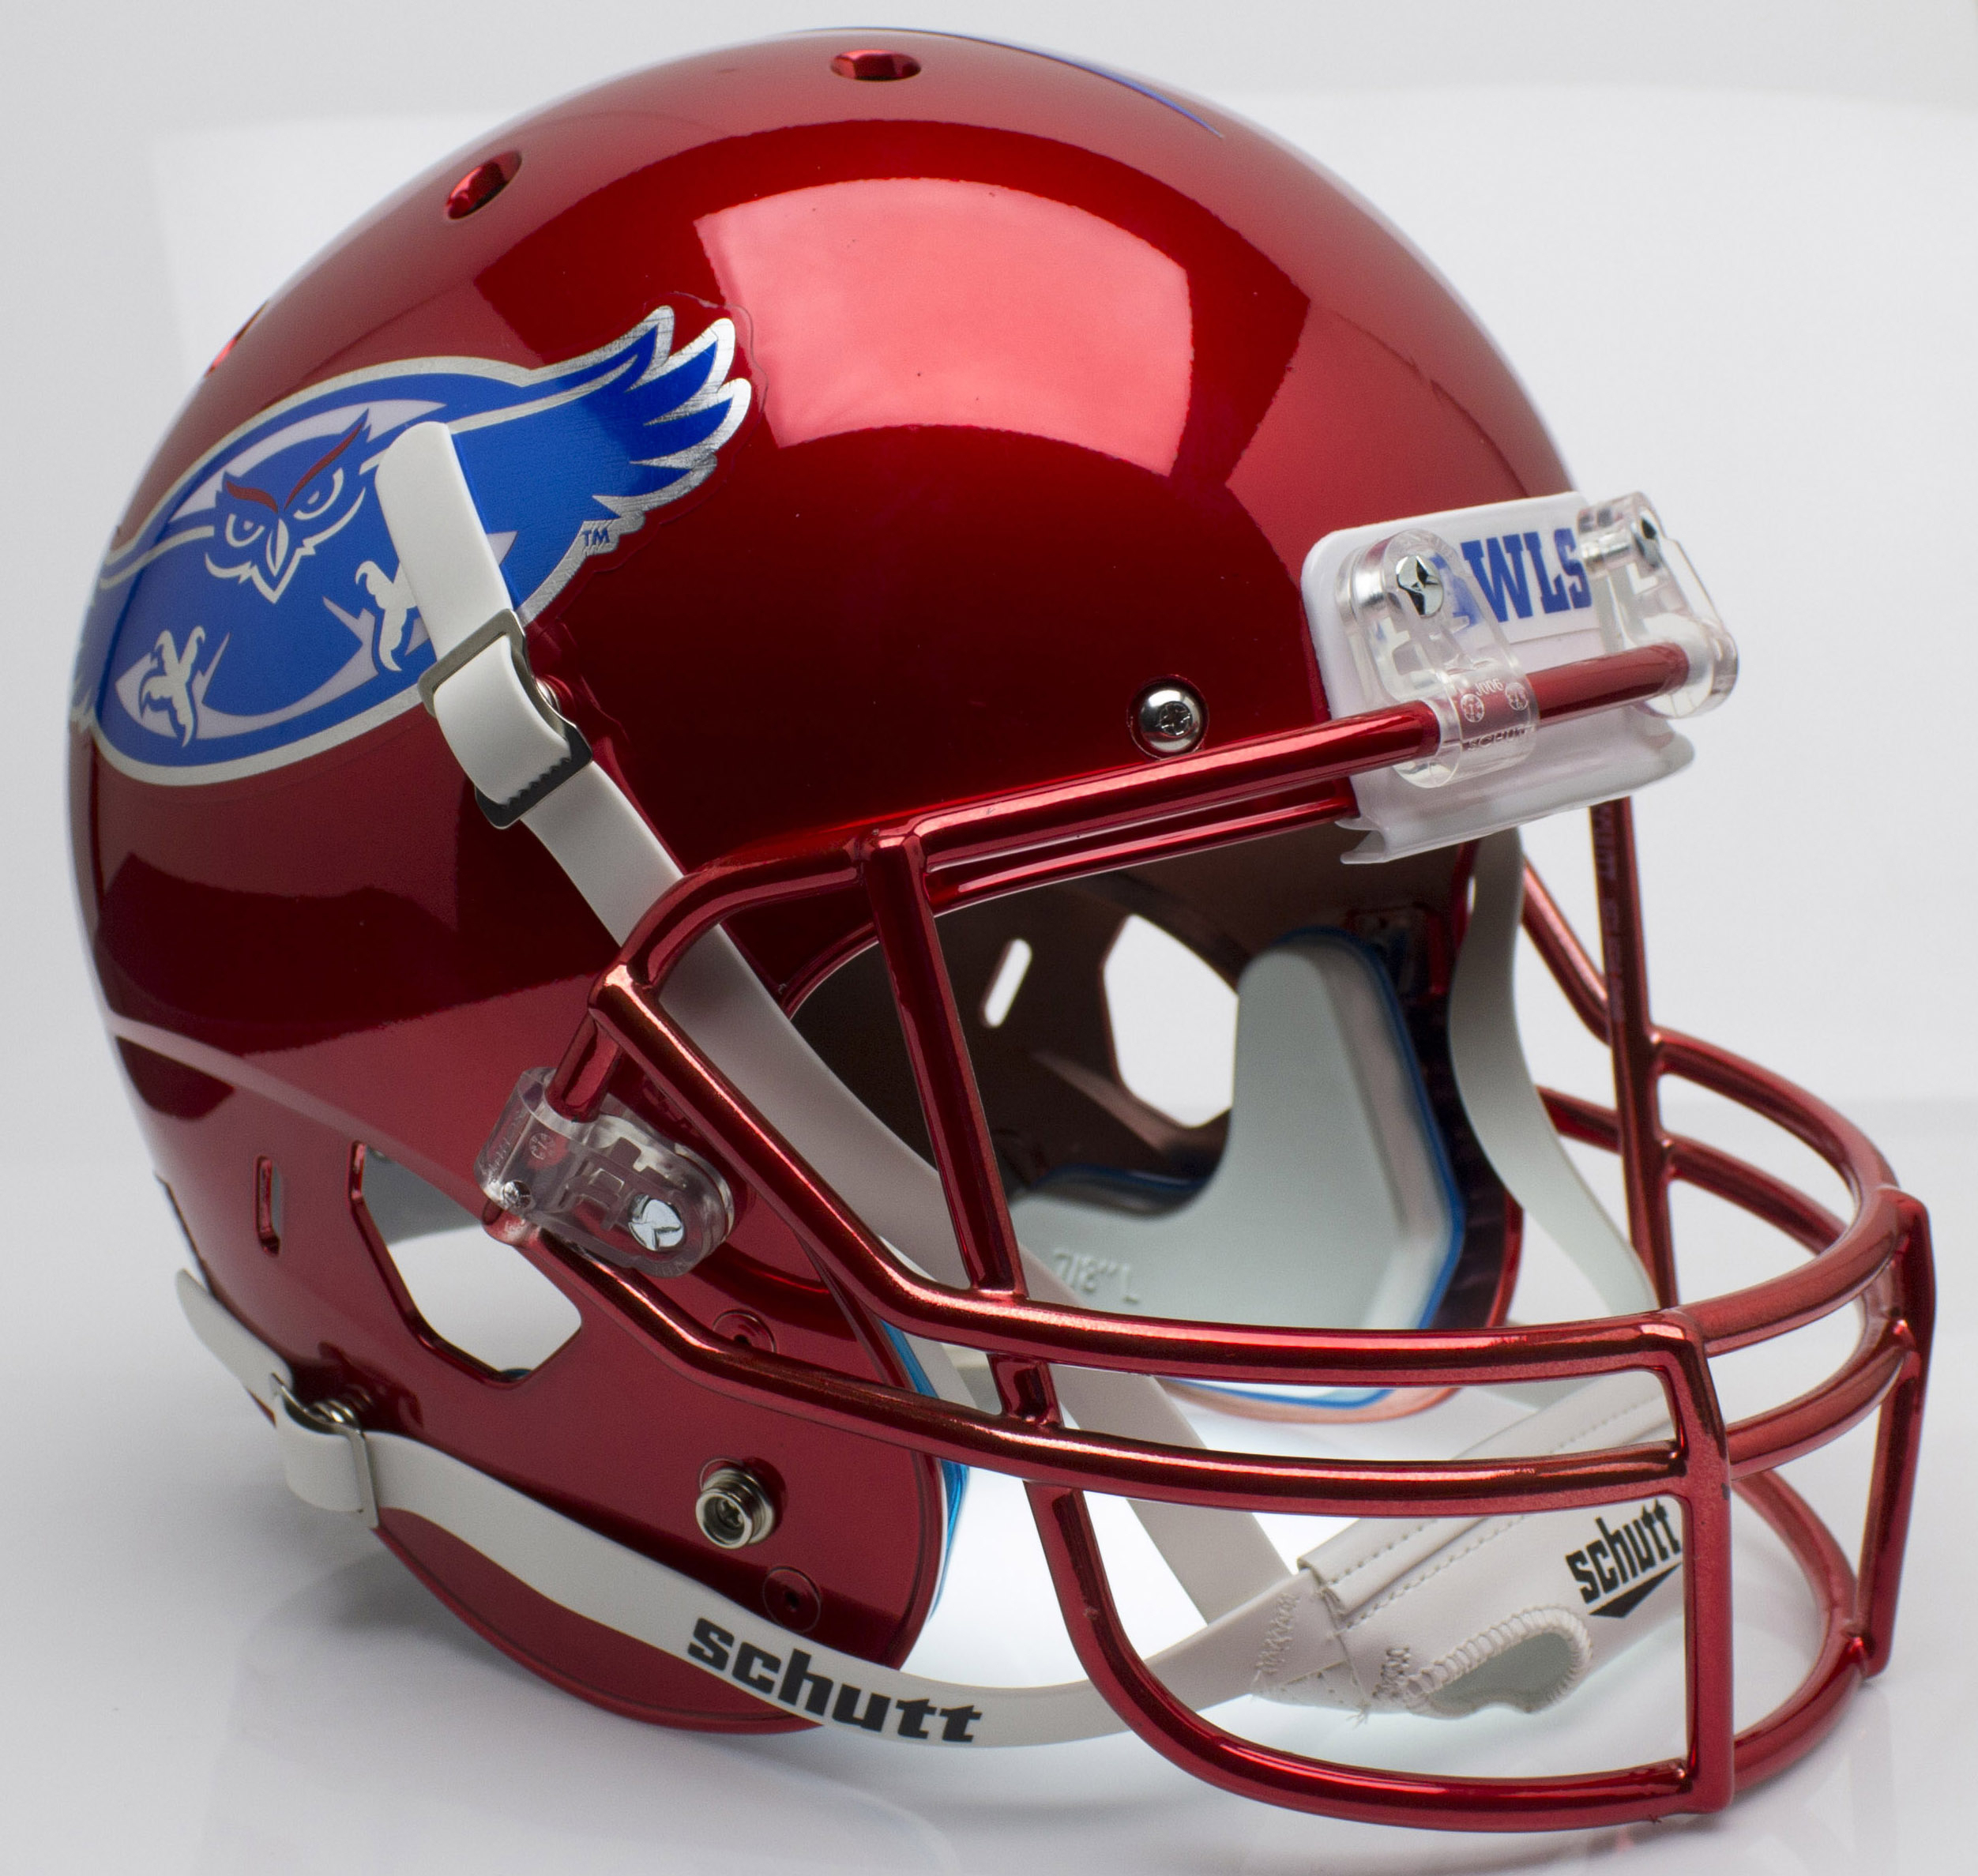 Florida Atlantic Owls Full XP Replica Football Helmet Schutt <B>Chrome</B>